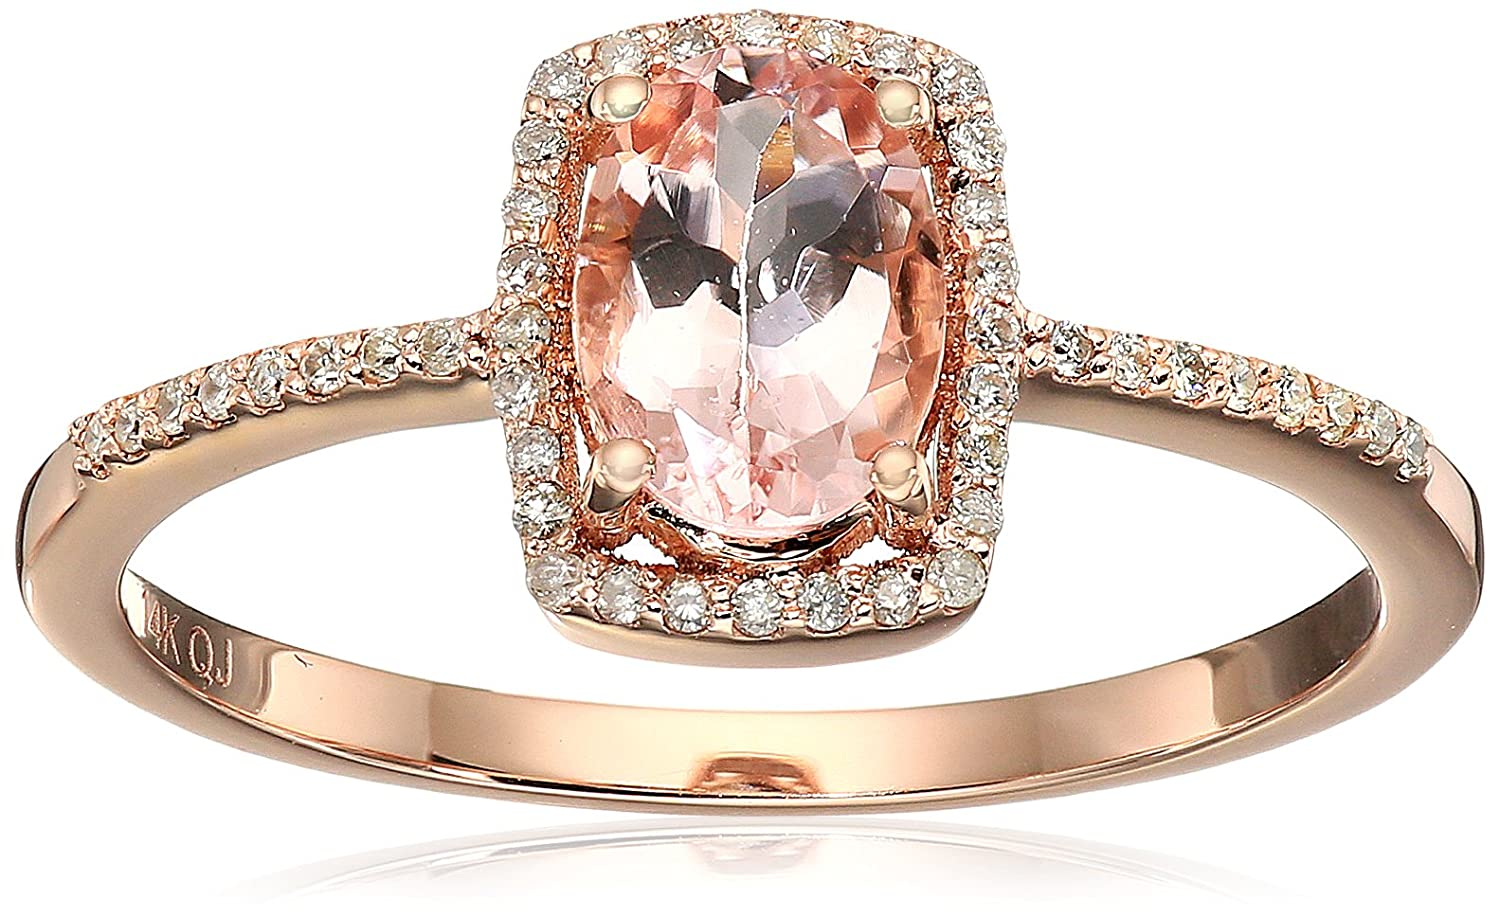 0.75 Carat Genuine Morganite & White Diamond 14K Rose Gold Ring, Size 7